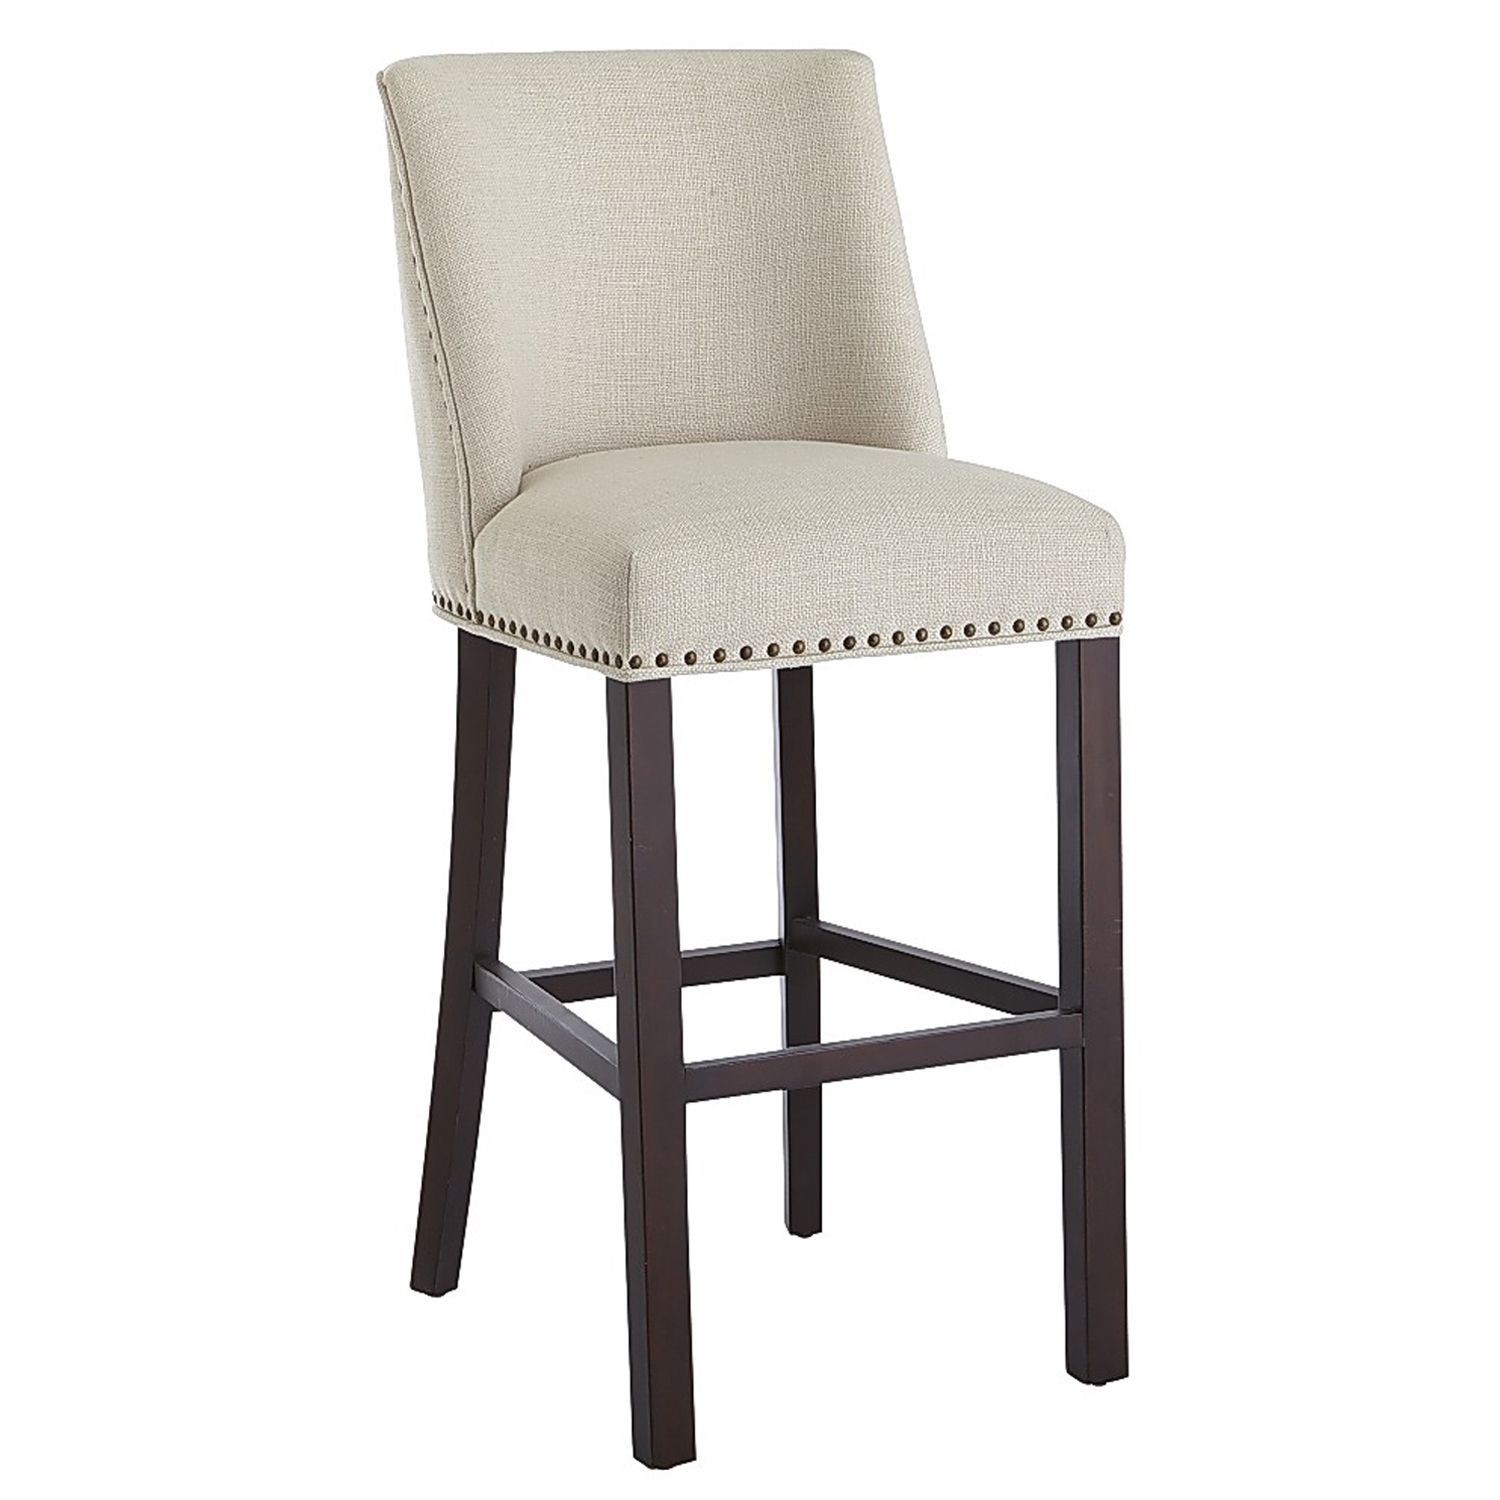 Linen Barstools For Every Budget Linens Bar Stool And